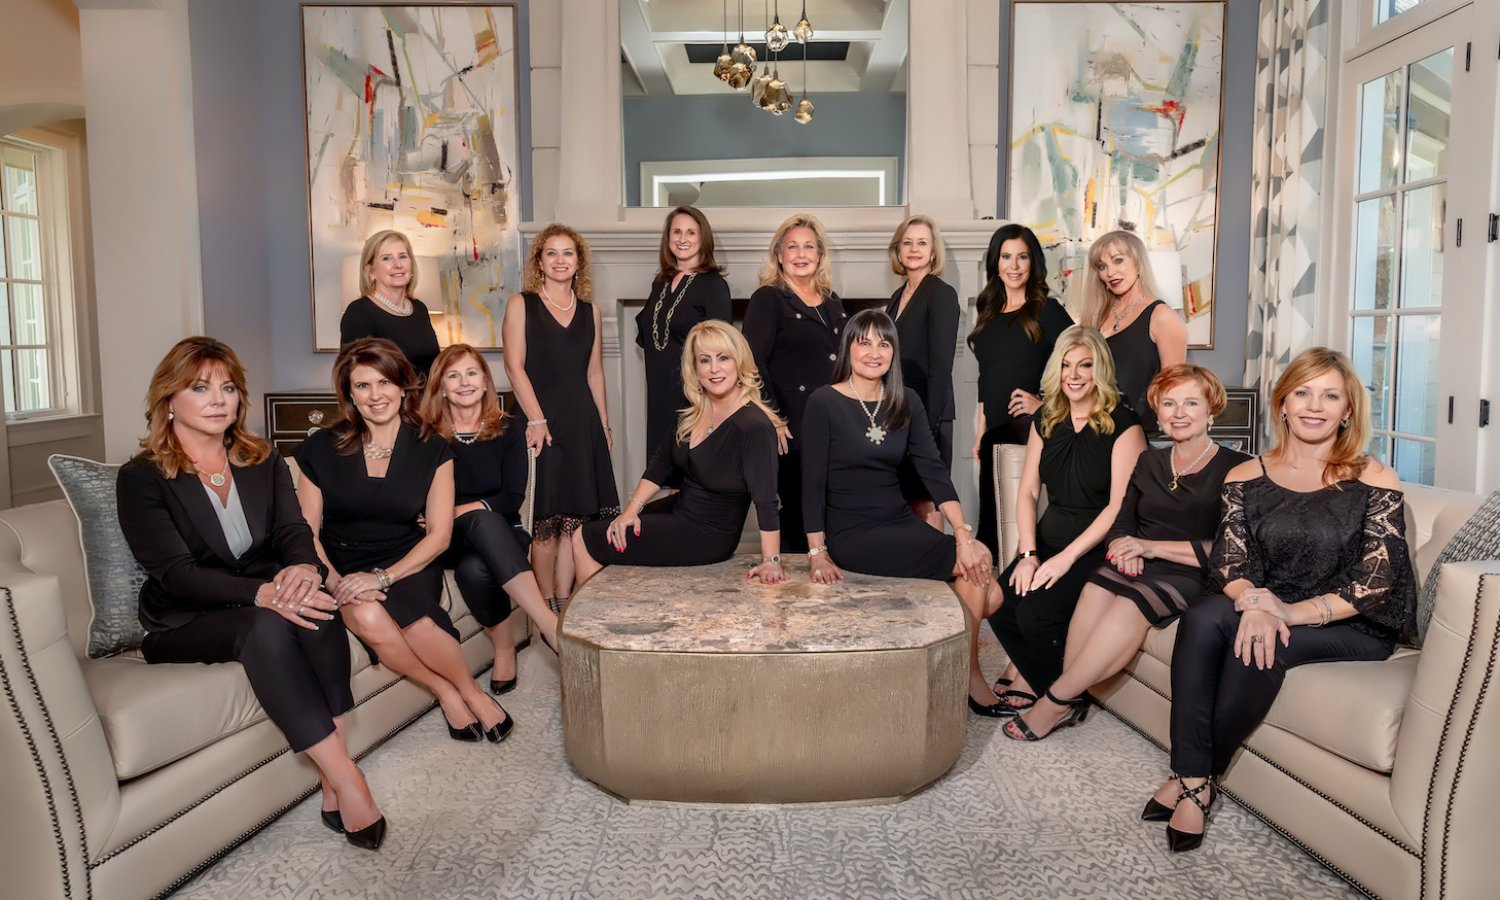 Team photo in luxurious living area